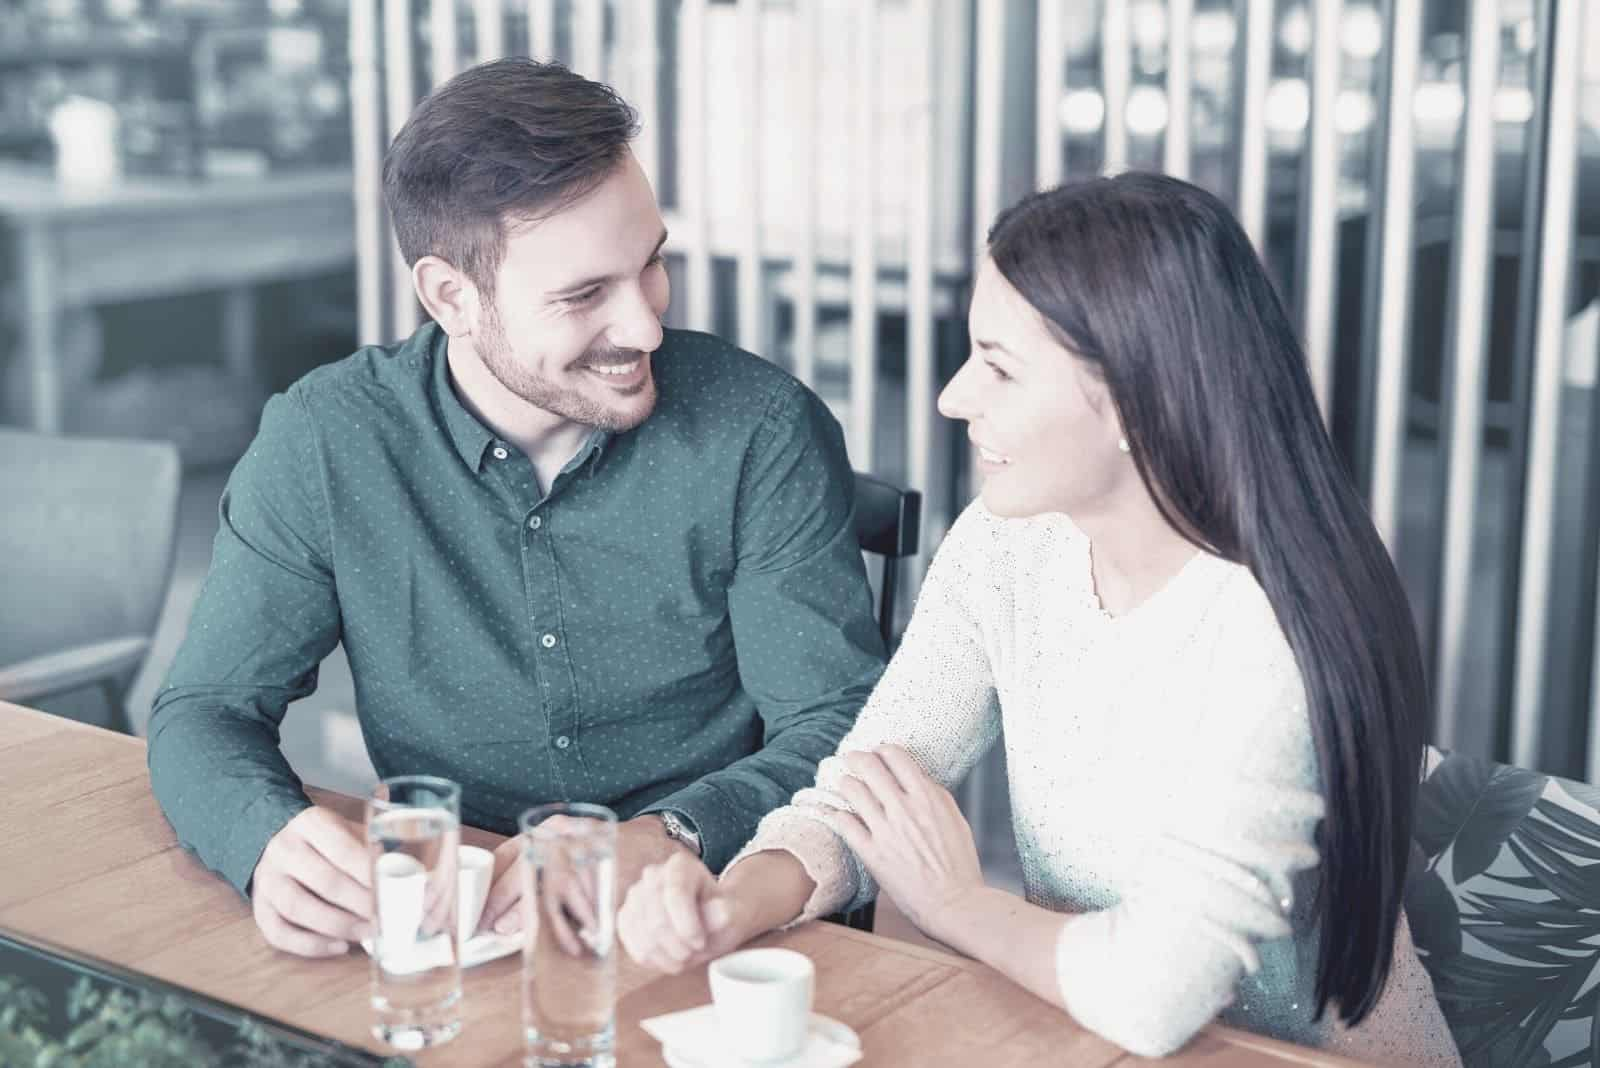 man and woman chatting in an outdoor cafe